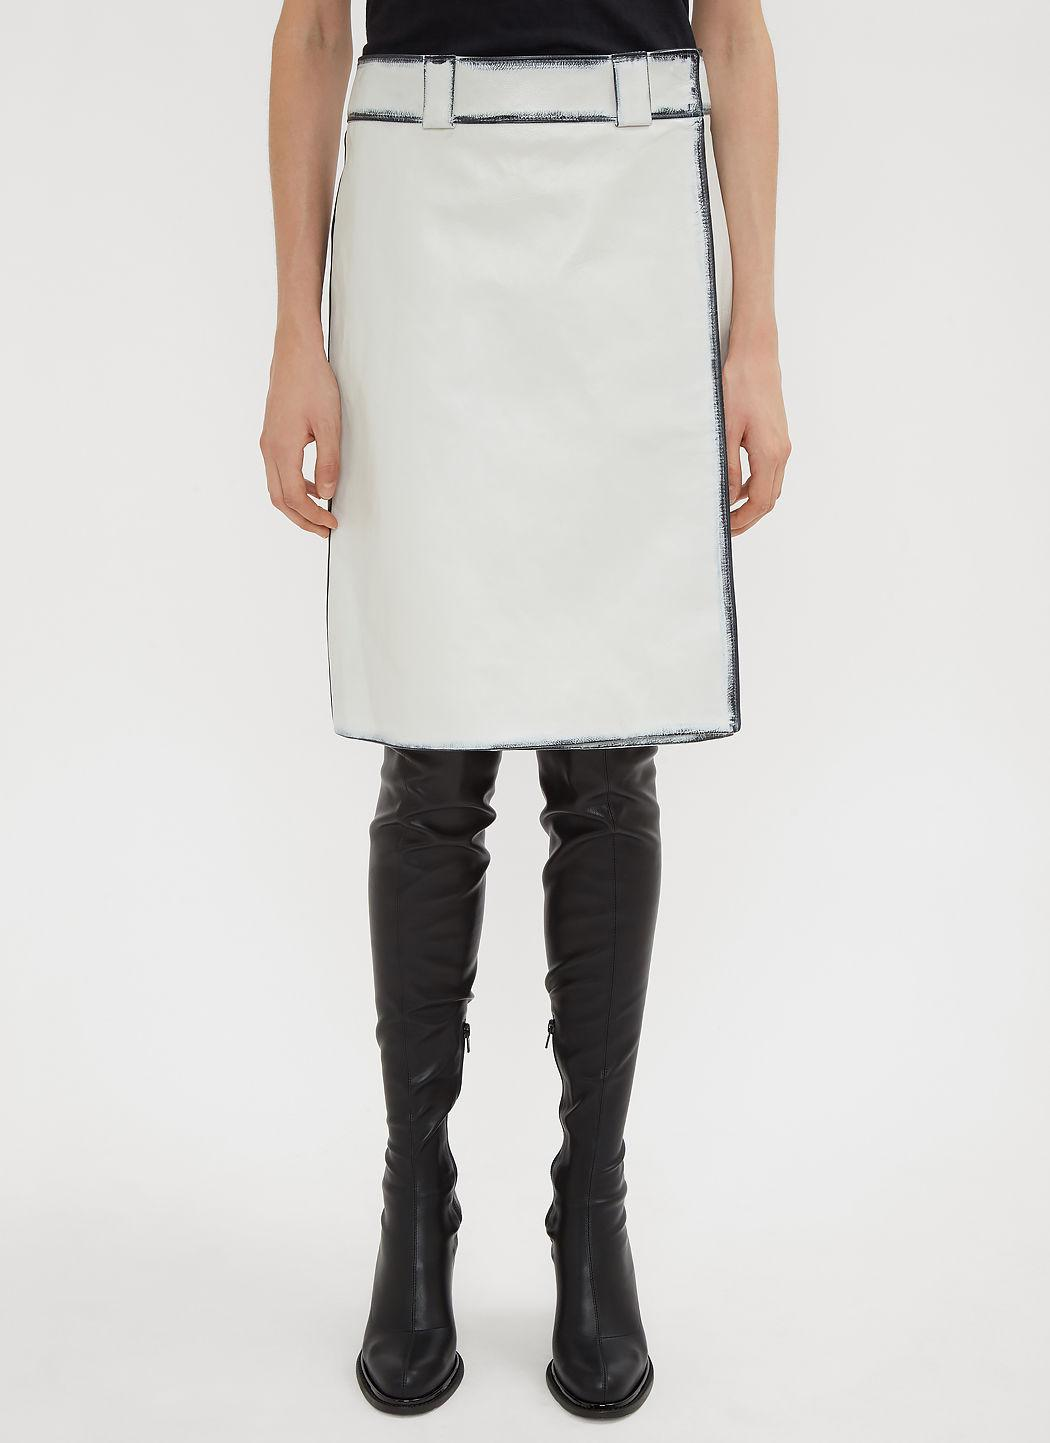 Prada Distressed Leather A-line Skirt In White